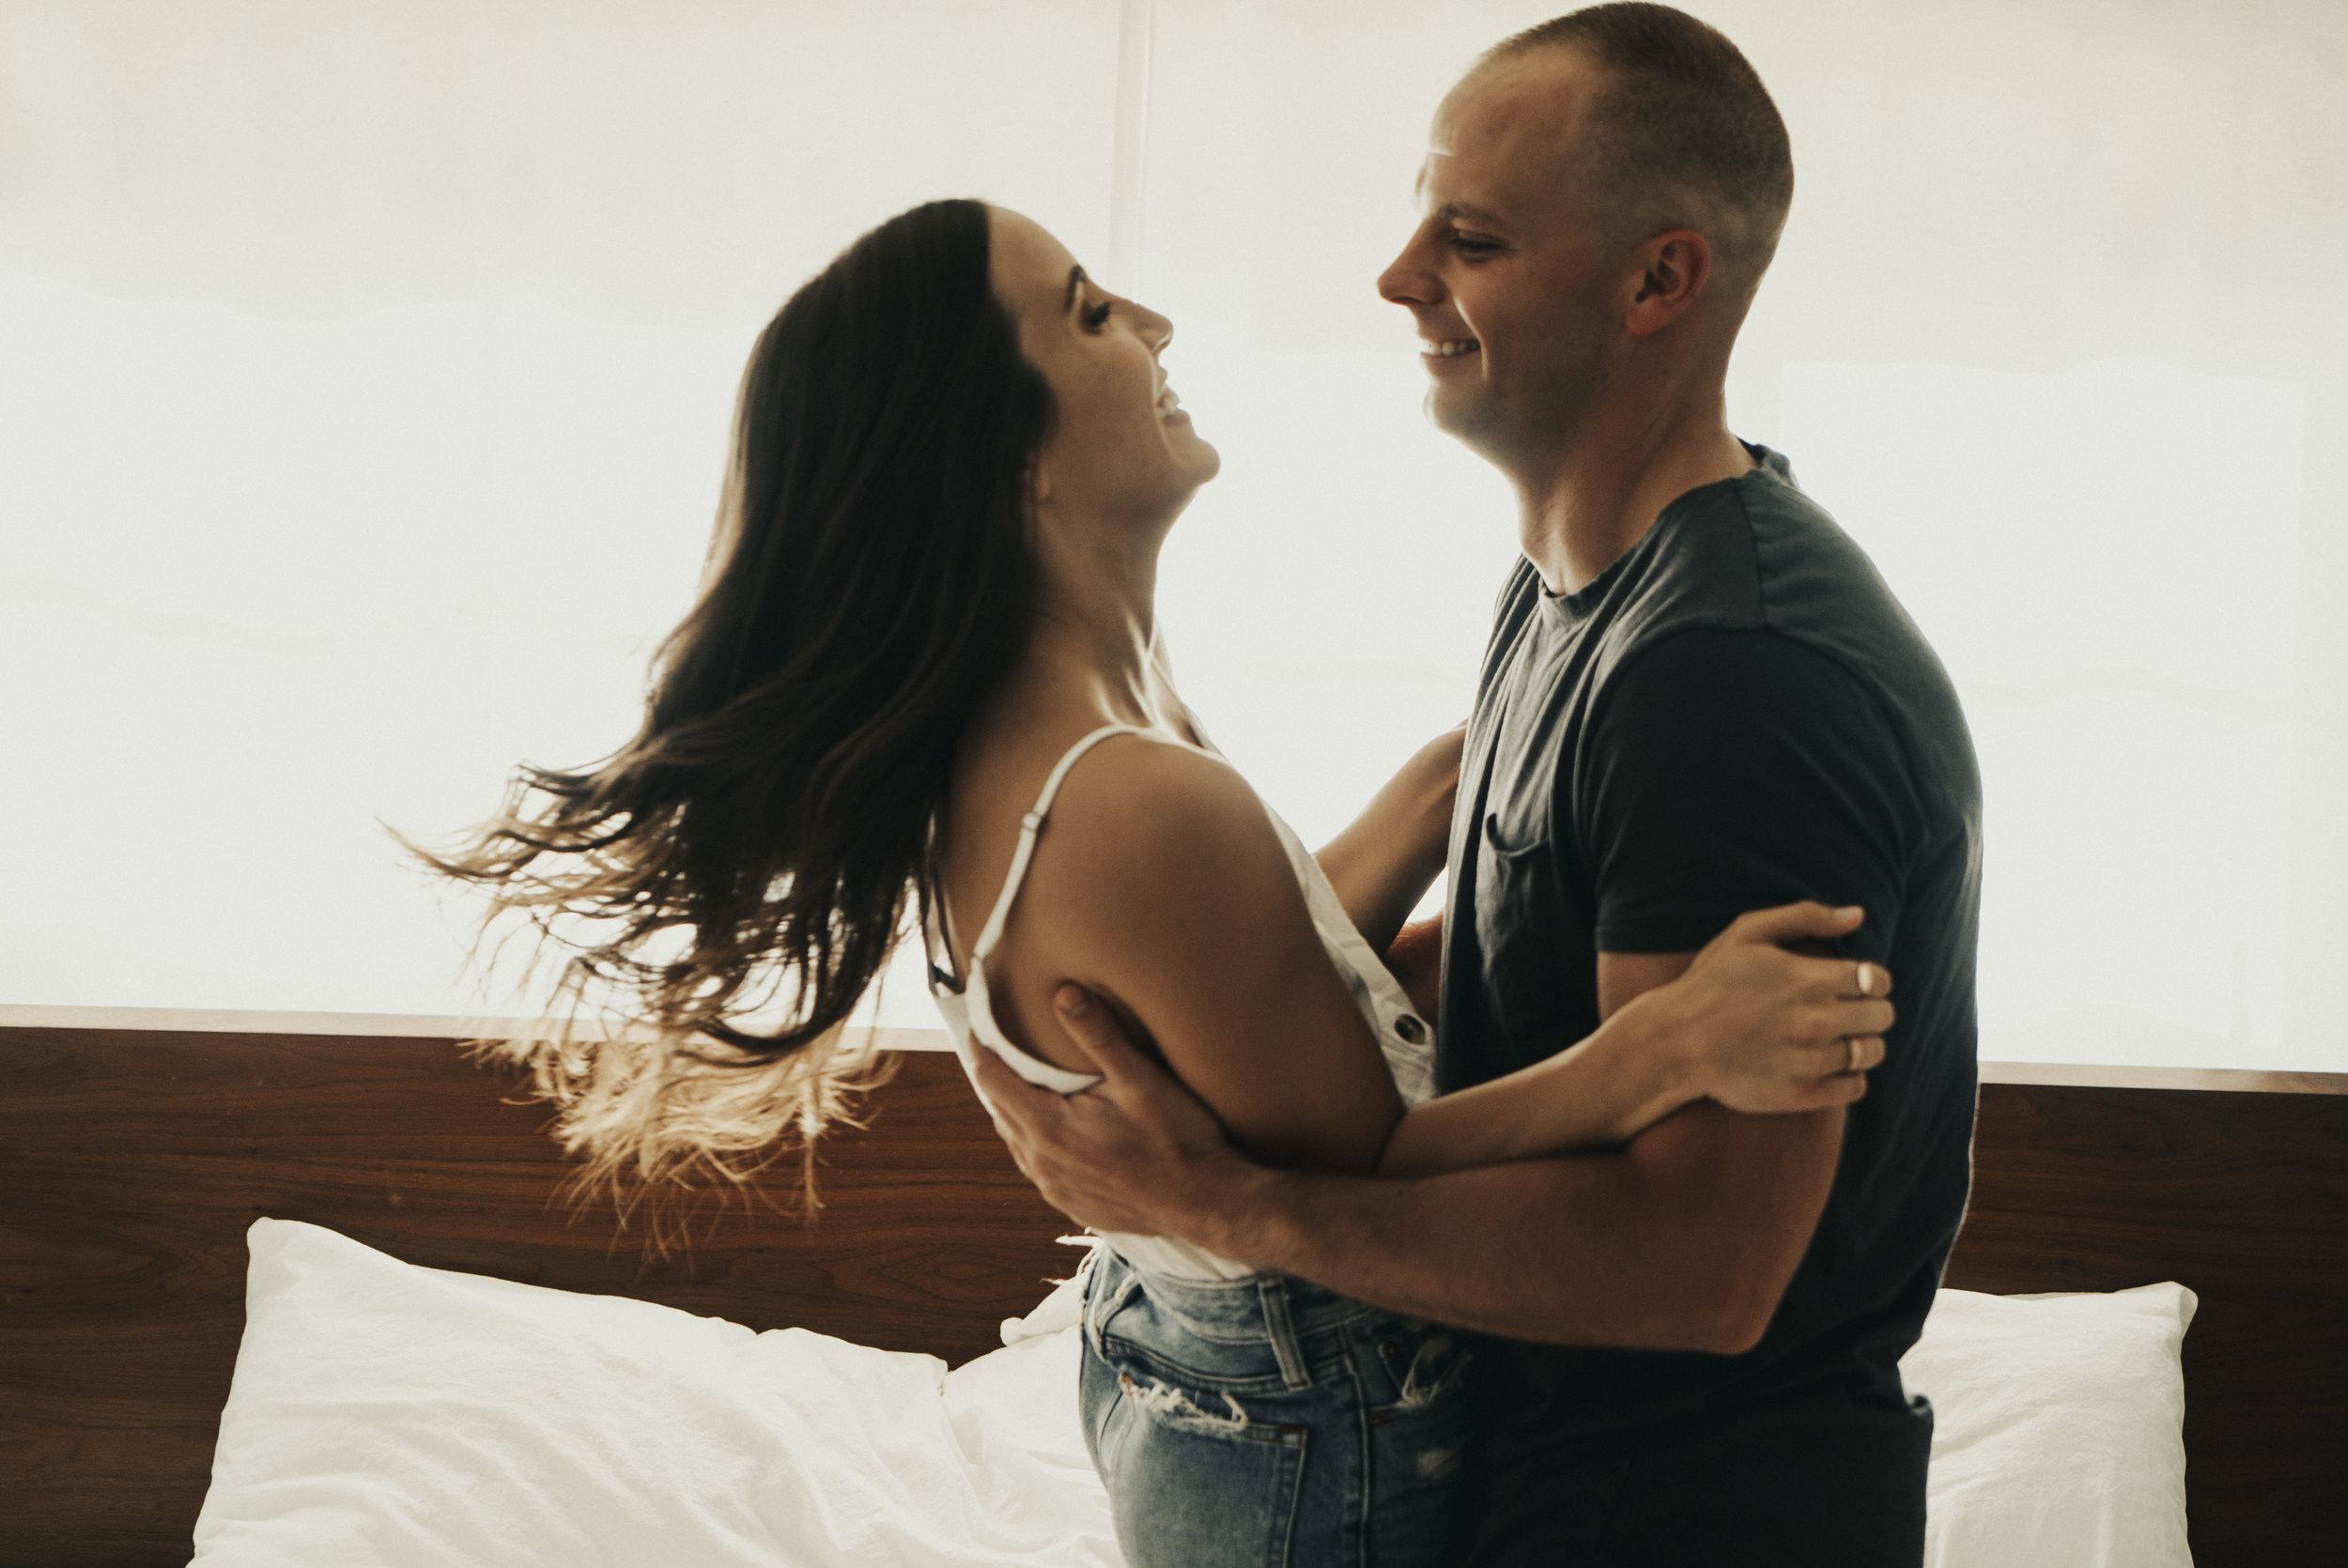 Michelle & Jerry - Sunday morning in-home session with this fun couple